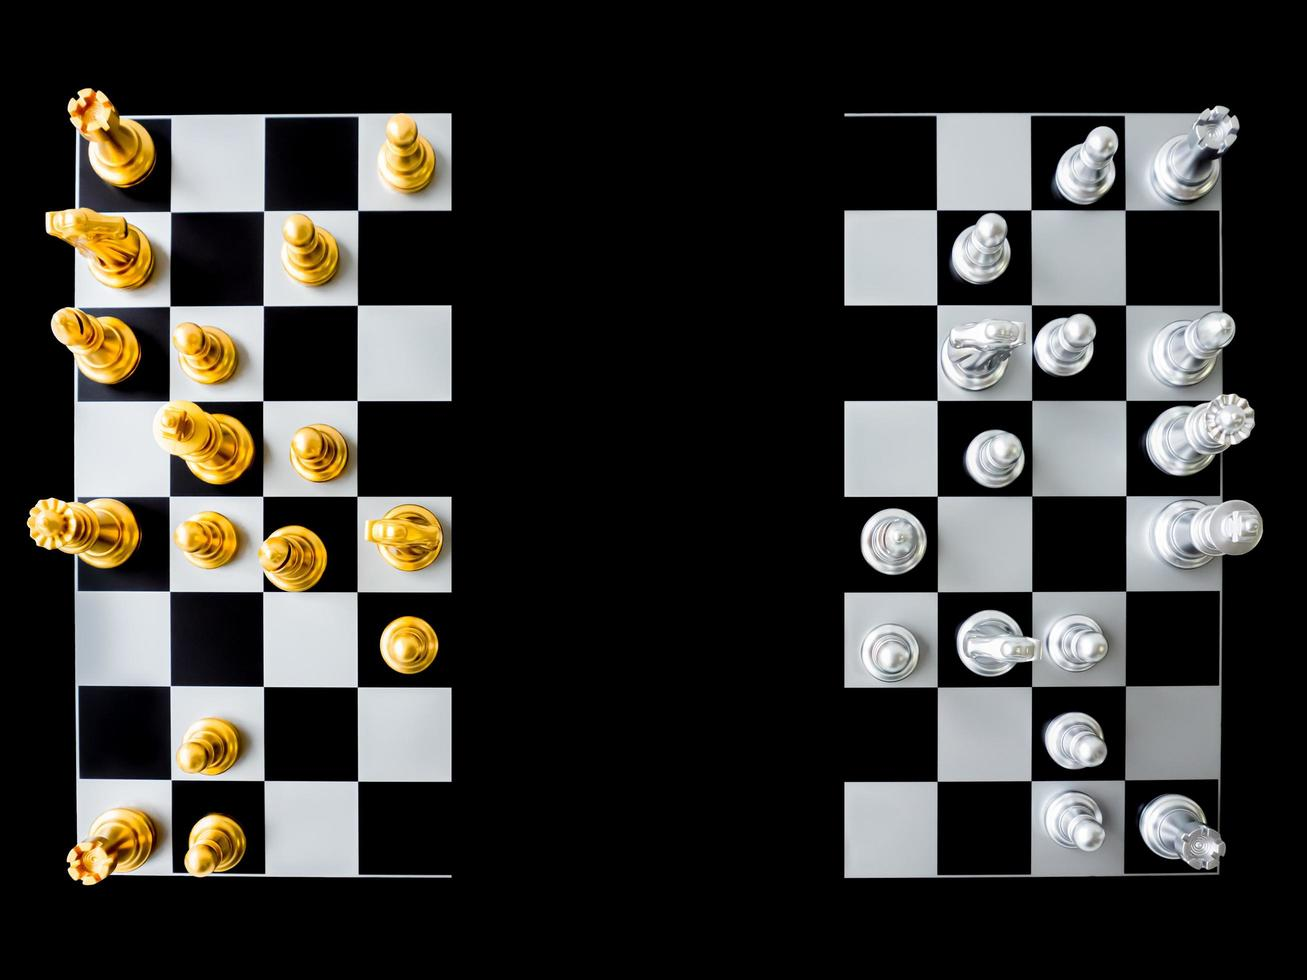 Top view of a chessboard photo